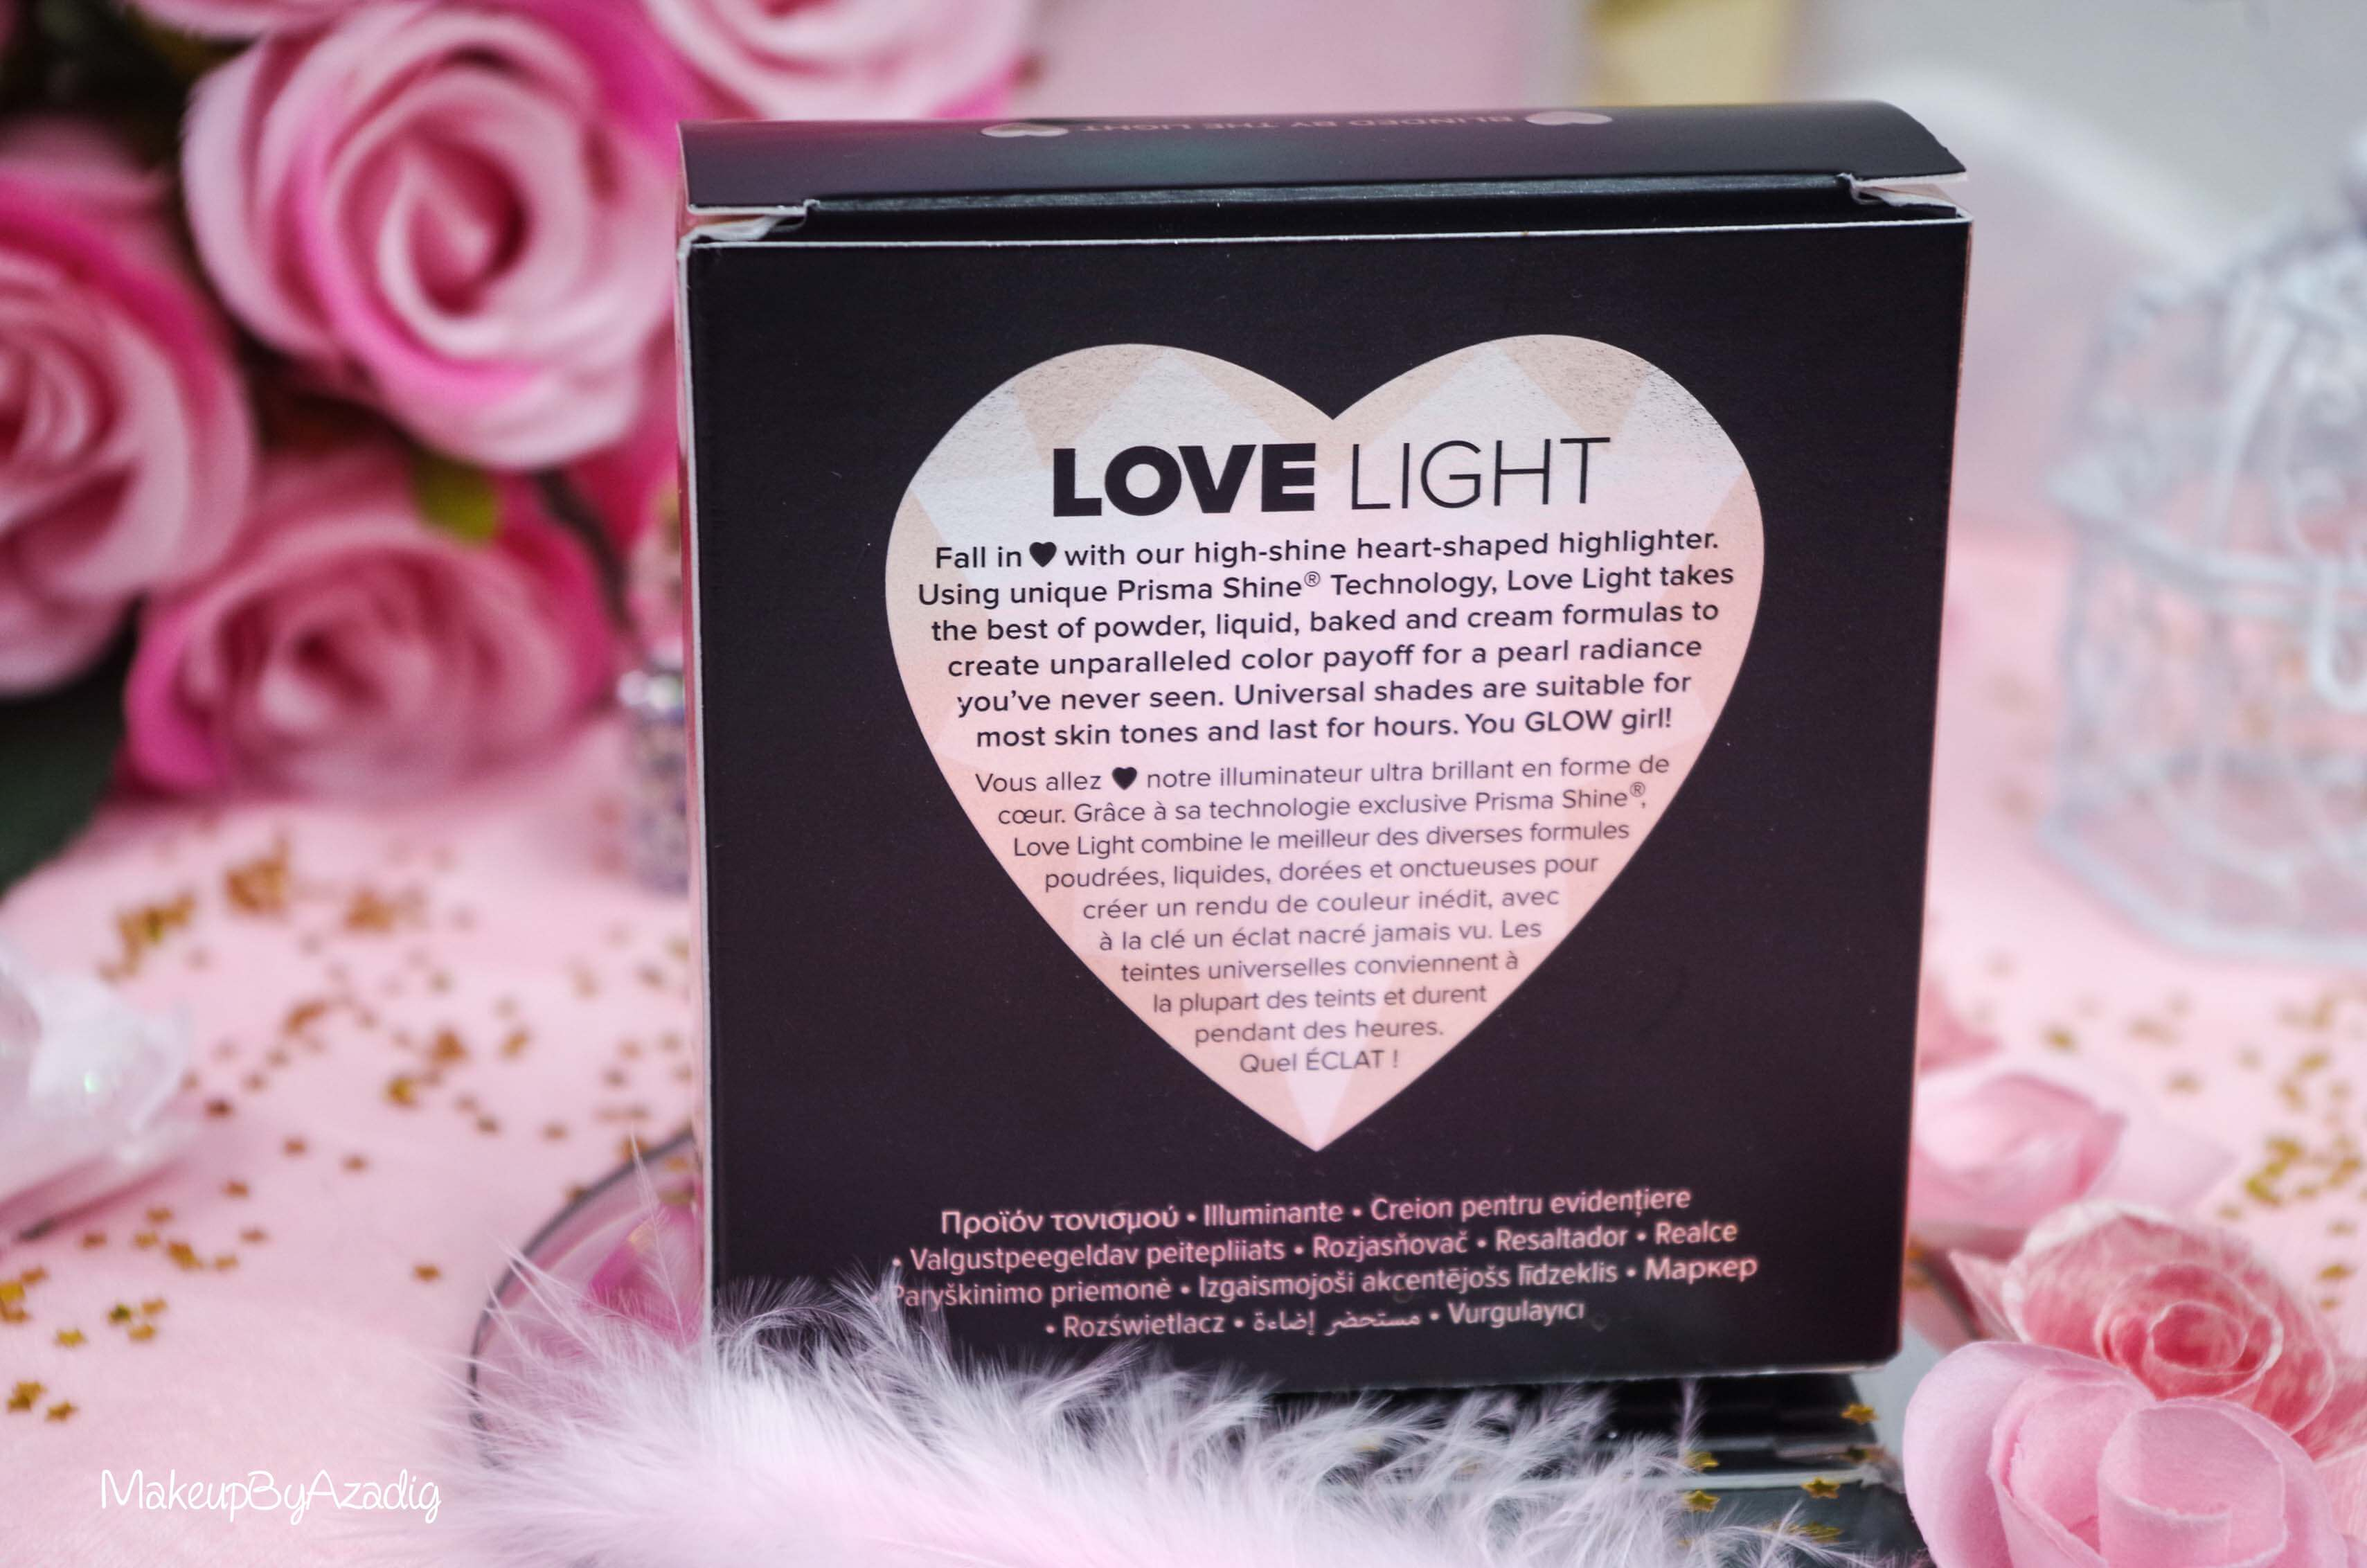 revue-review-highlighter-love-light-too-faced-coeur-avis-prix-sephora-makeupbyazadig-diamond